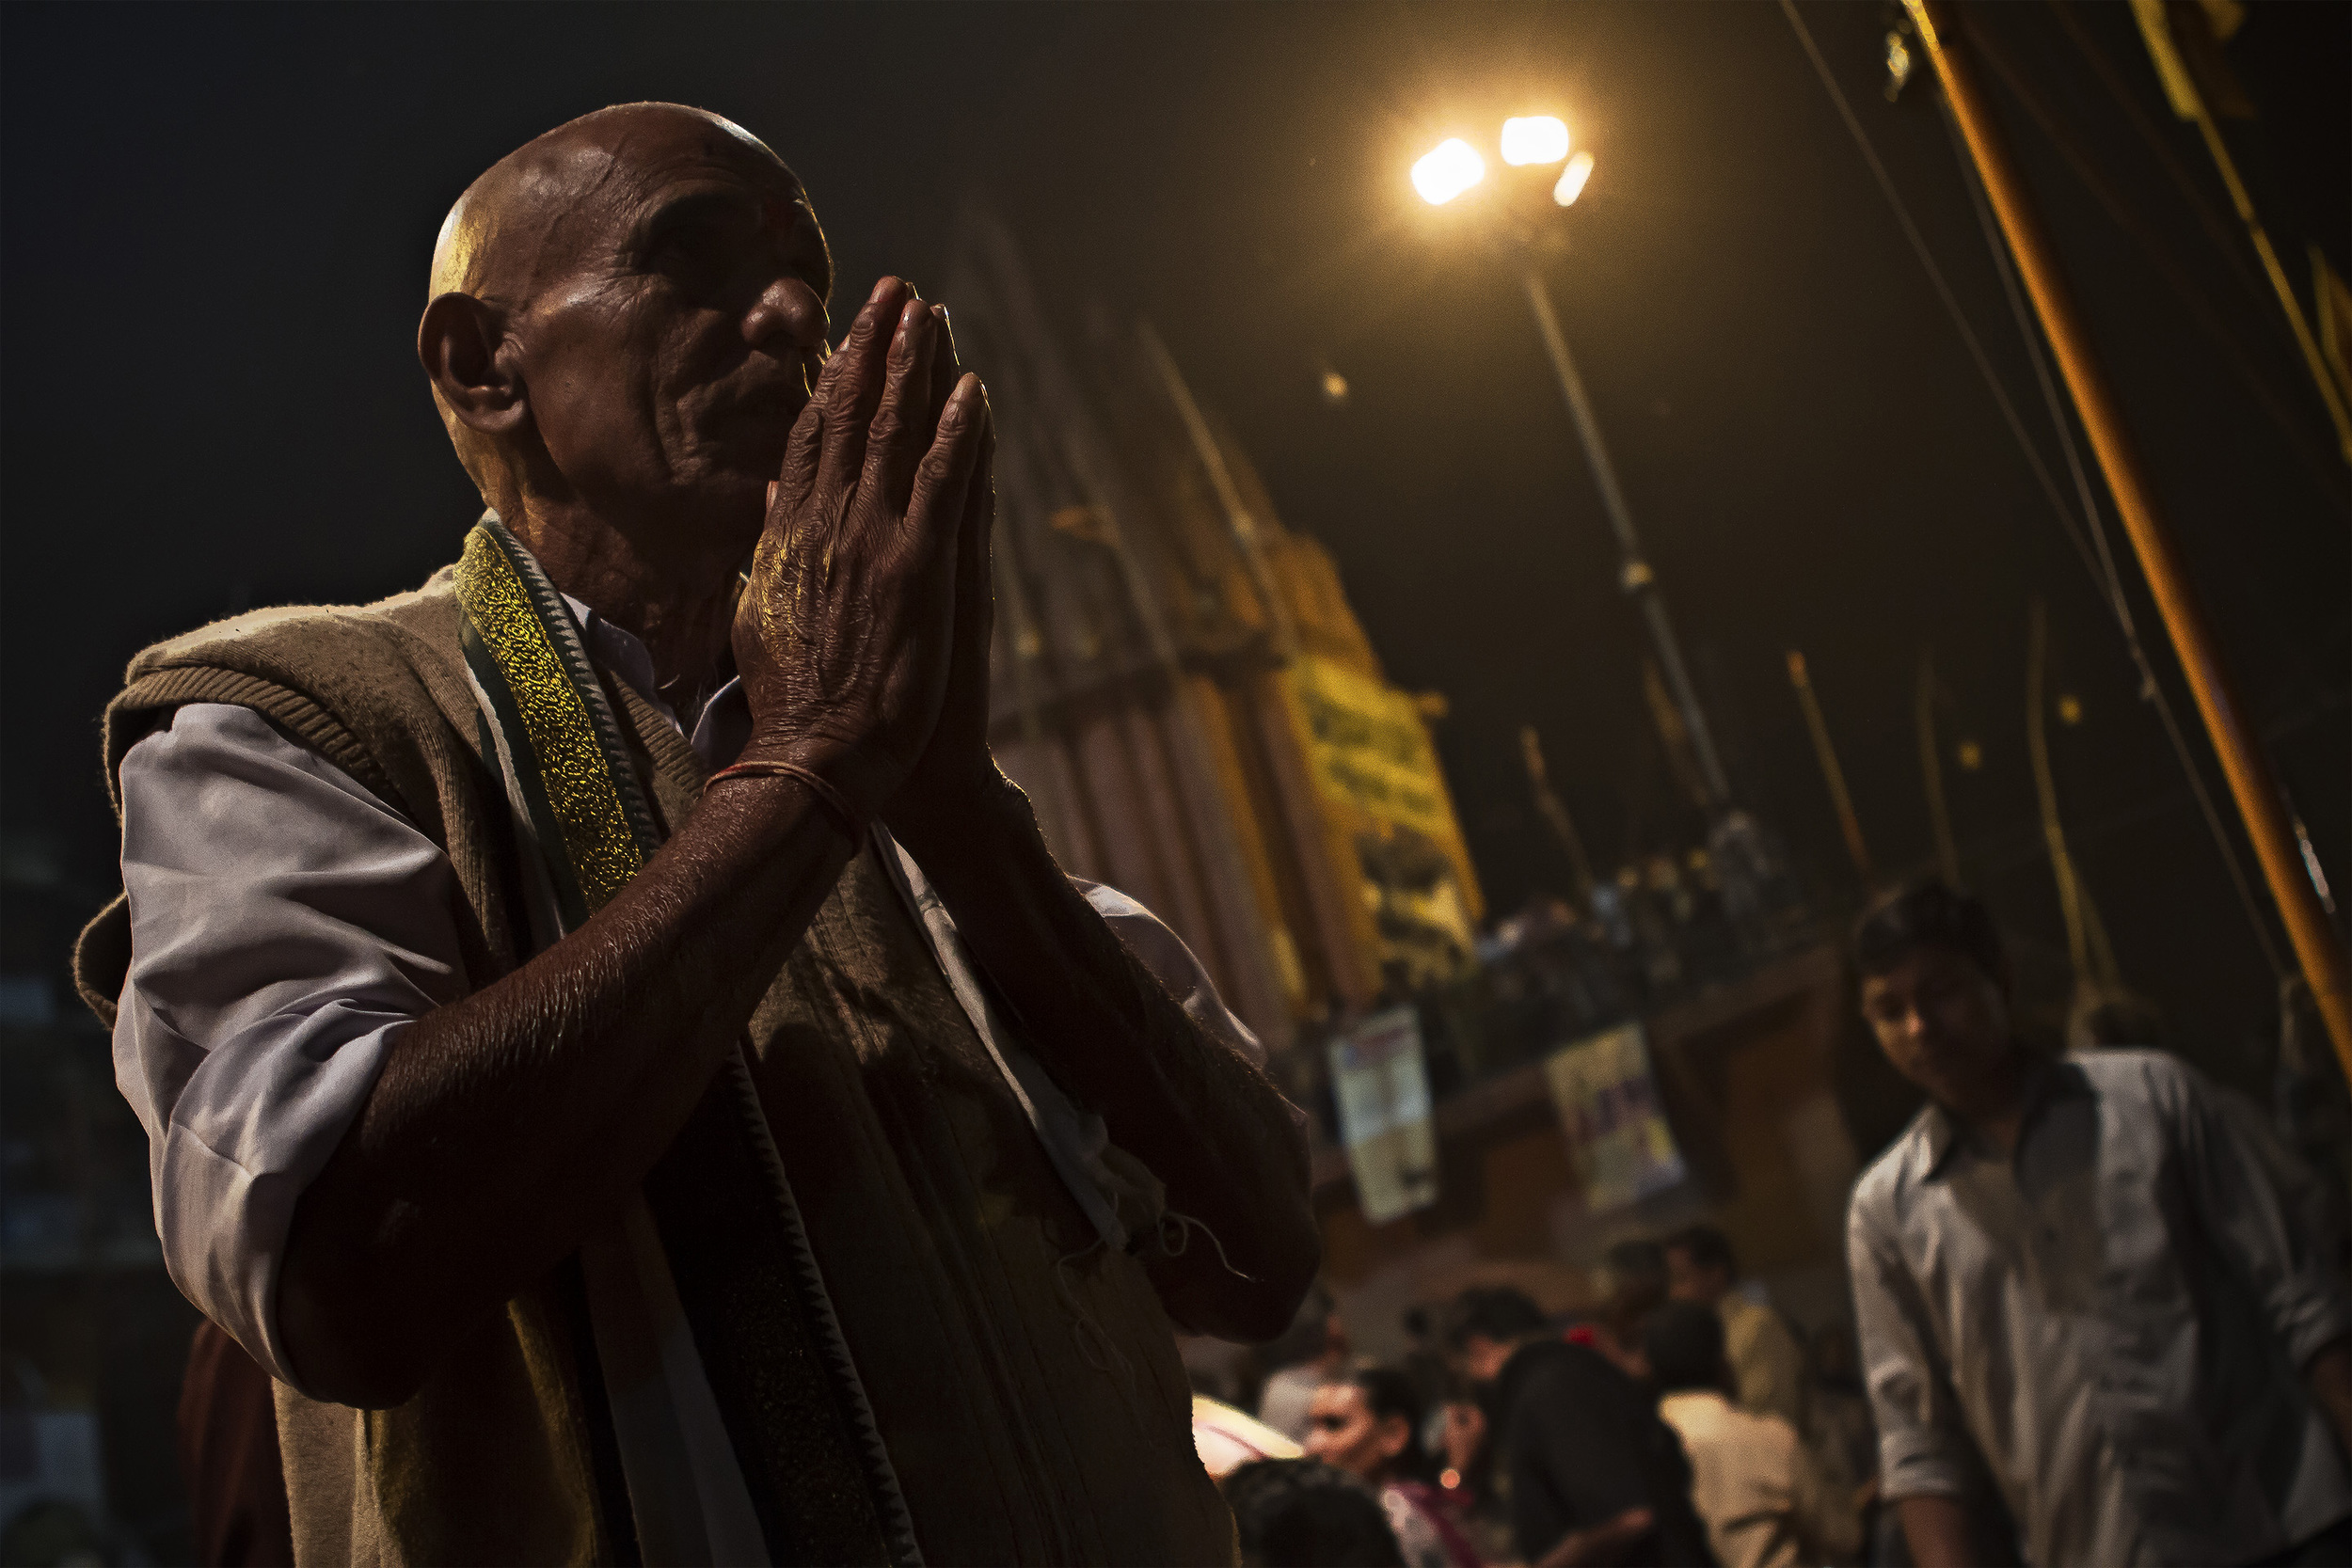 14 November, 2012 - Dashashwamedh Ghat, Varanasi   A devotee prays facing the Ganges at the conclusion of the nightly Ganga Aarti Ceremony